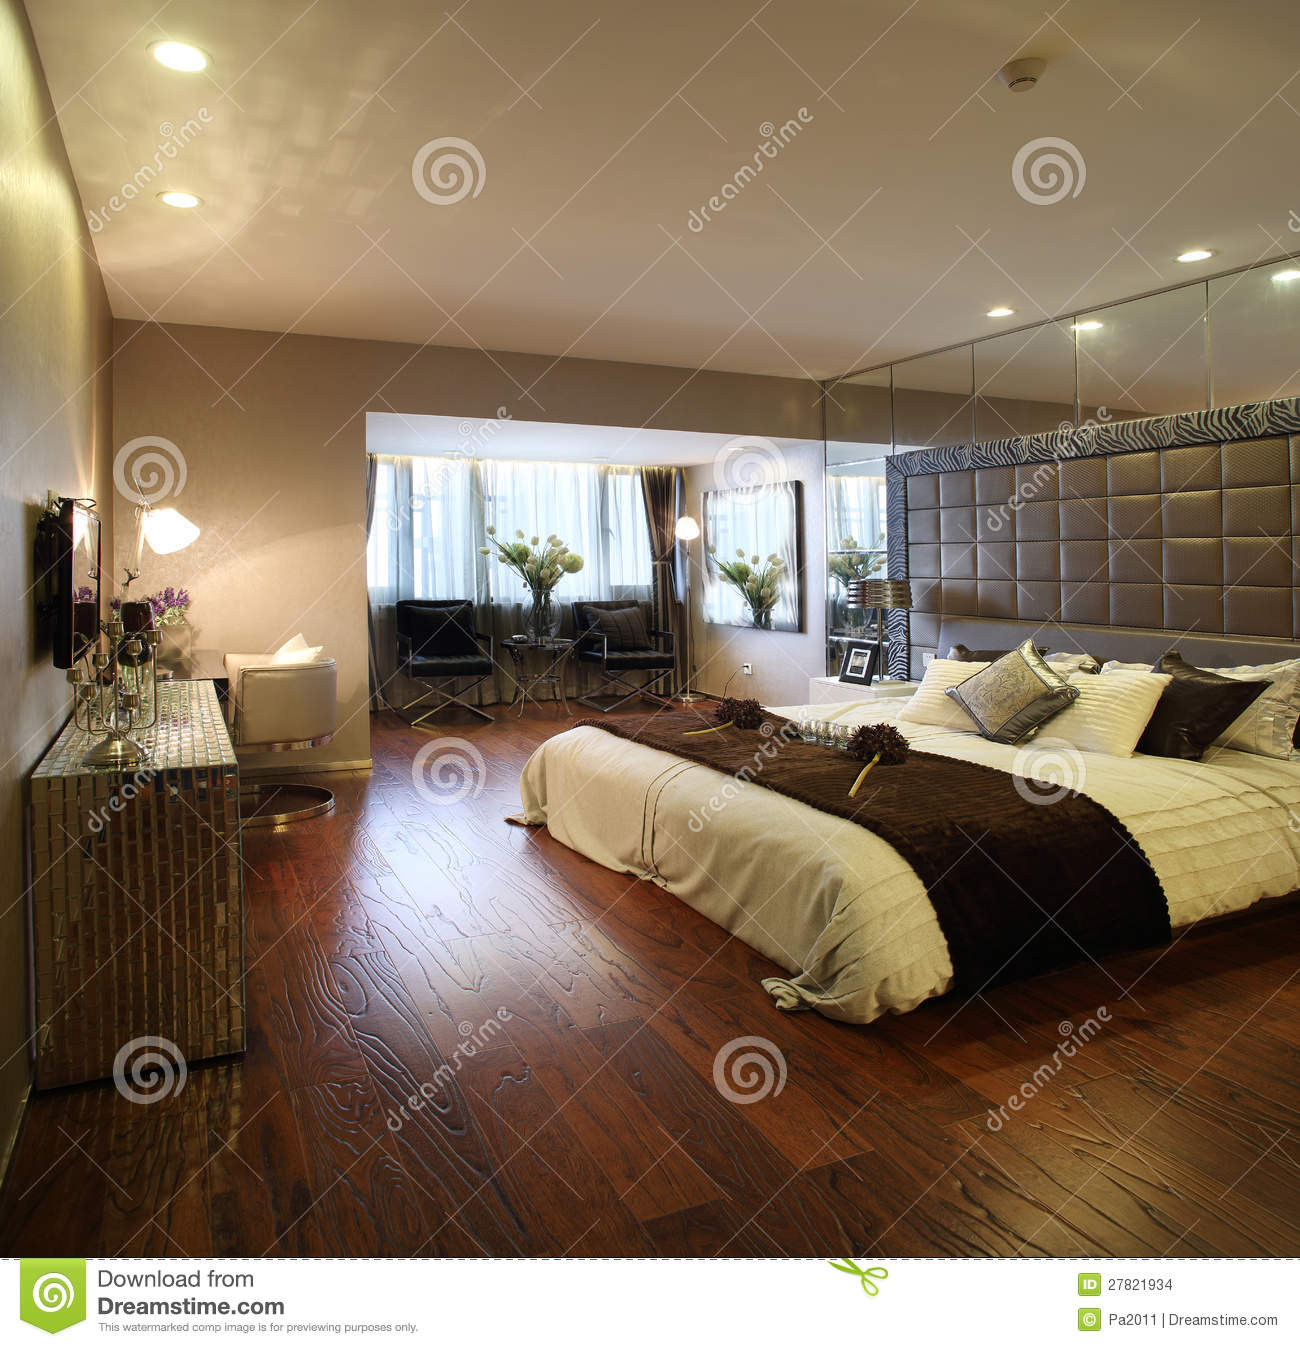 moderne innenarchitektur schlafzimmer stockbilder bild. Black Bedroom Furniture Sets. Home Design Ideas